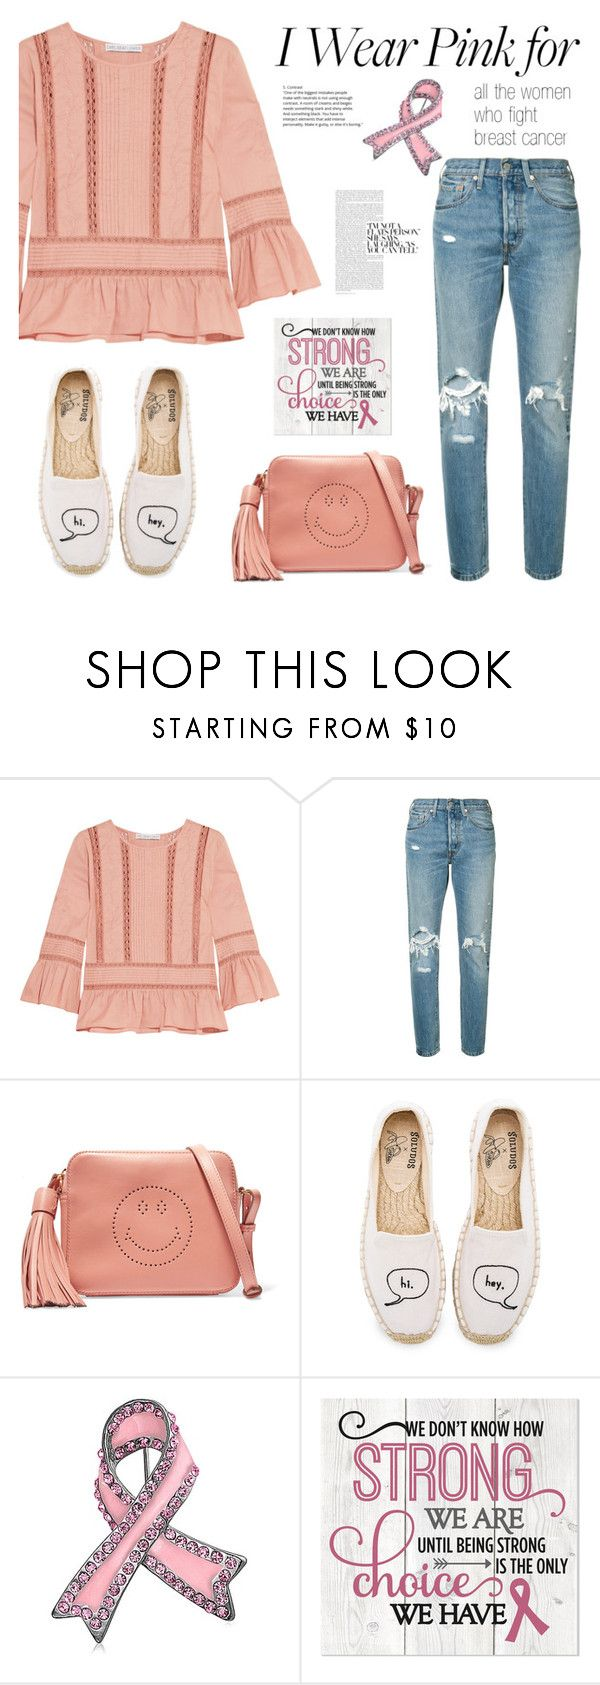 """""""Stay Strong"""" by rafaela-style ❤ liked on Polyvore featuring Chelsea Flower, Levi's, Anya Hindmarch, Soludos, Bling Jewelry and breastcancerawareness"""